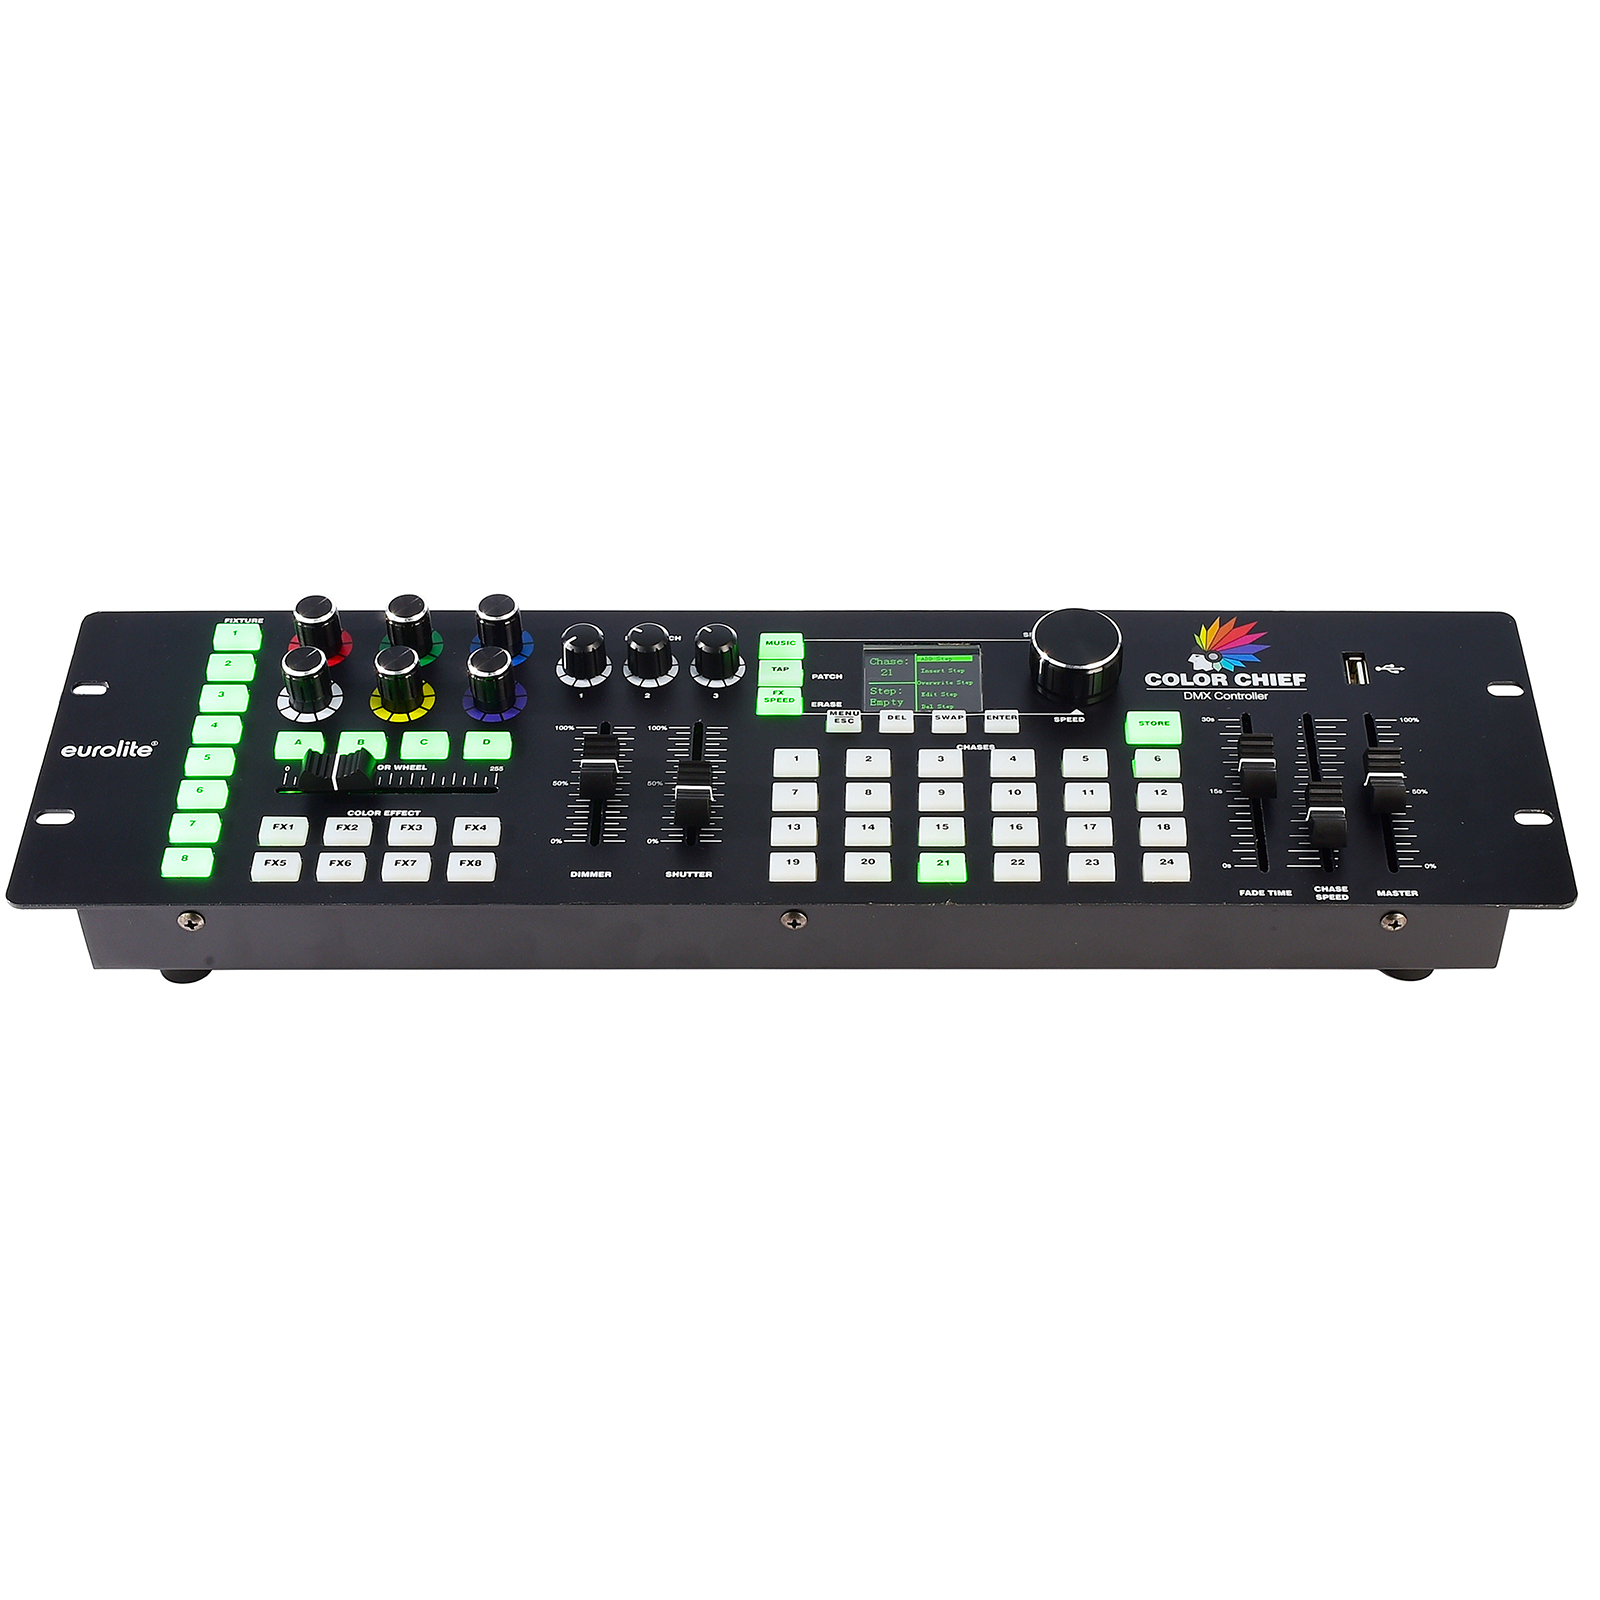 Eurolite Color Chief controller LED DMX PRO 512 USB mixer effects lights 8 channels